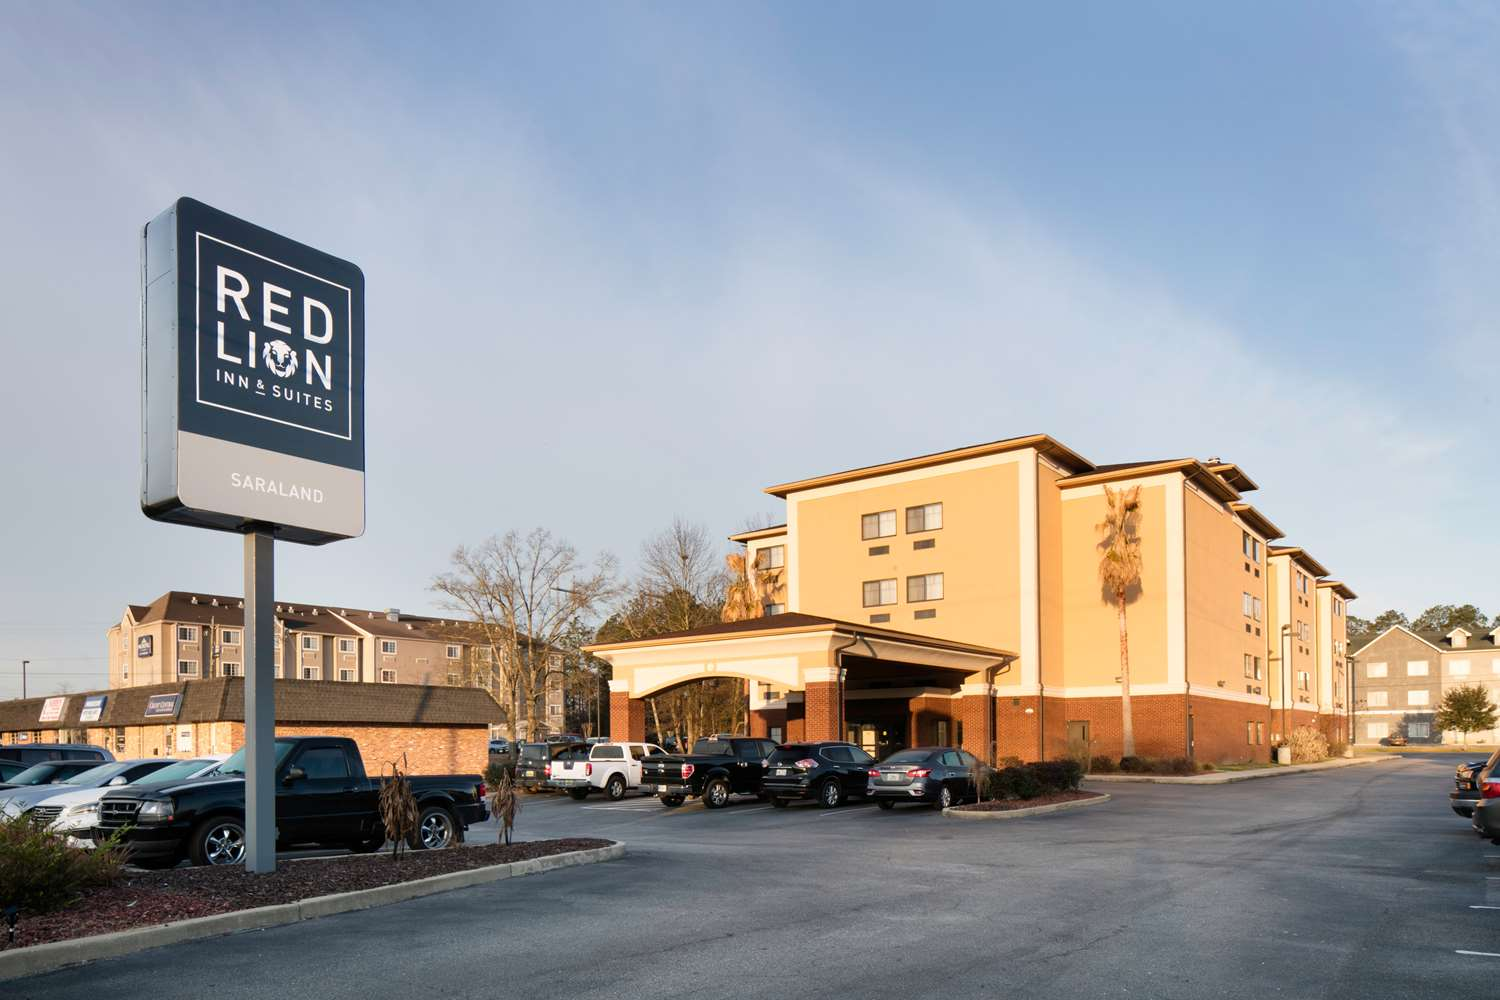 Exterior view - Red Lion Inn & Suites Saraland